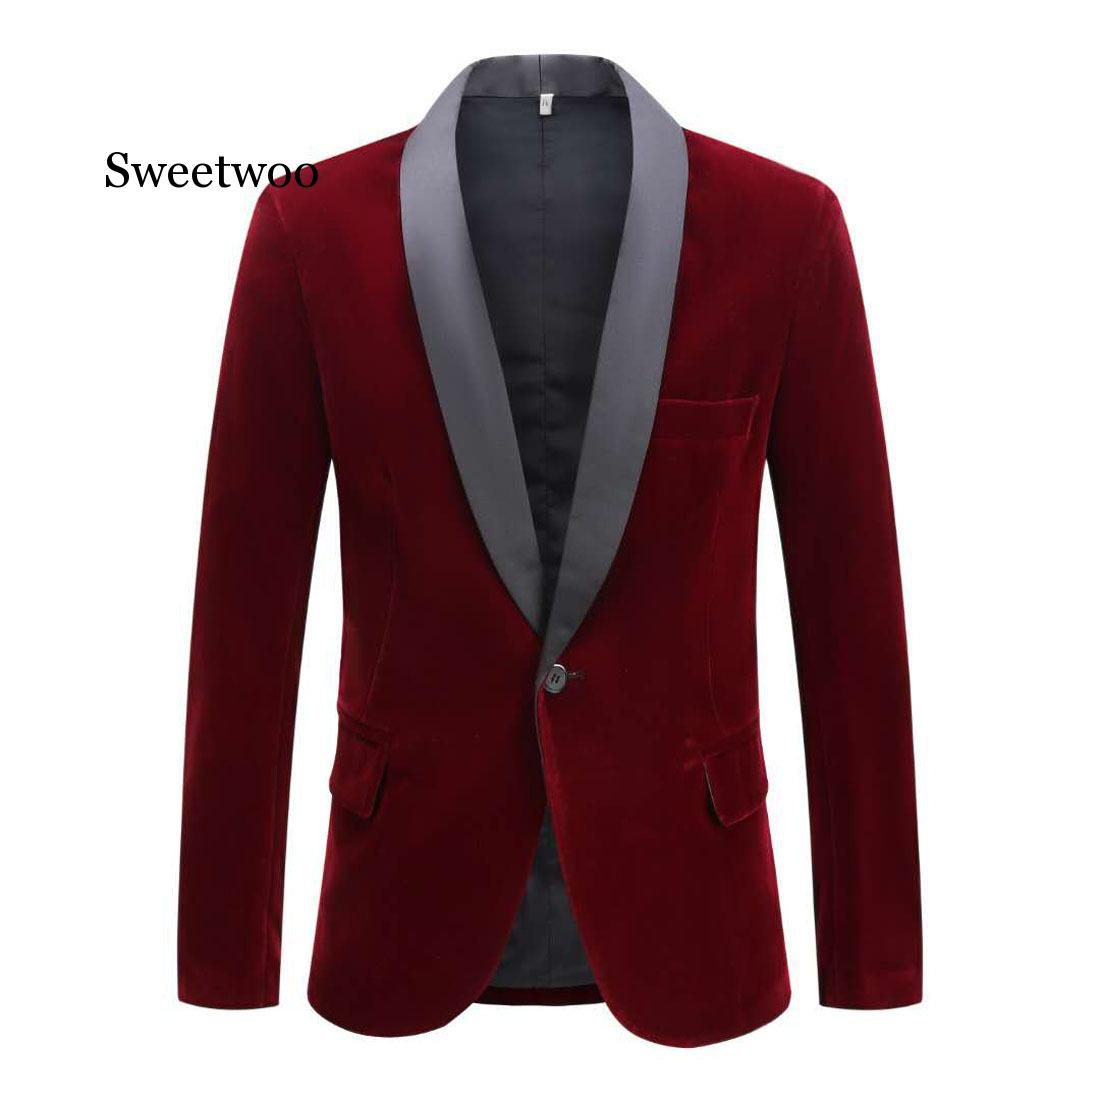 SWEETWOO Men's Autumn Winter Velvet Wine Red Fashion Suit Jacket Singer Slim Fit Blazer